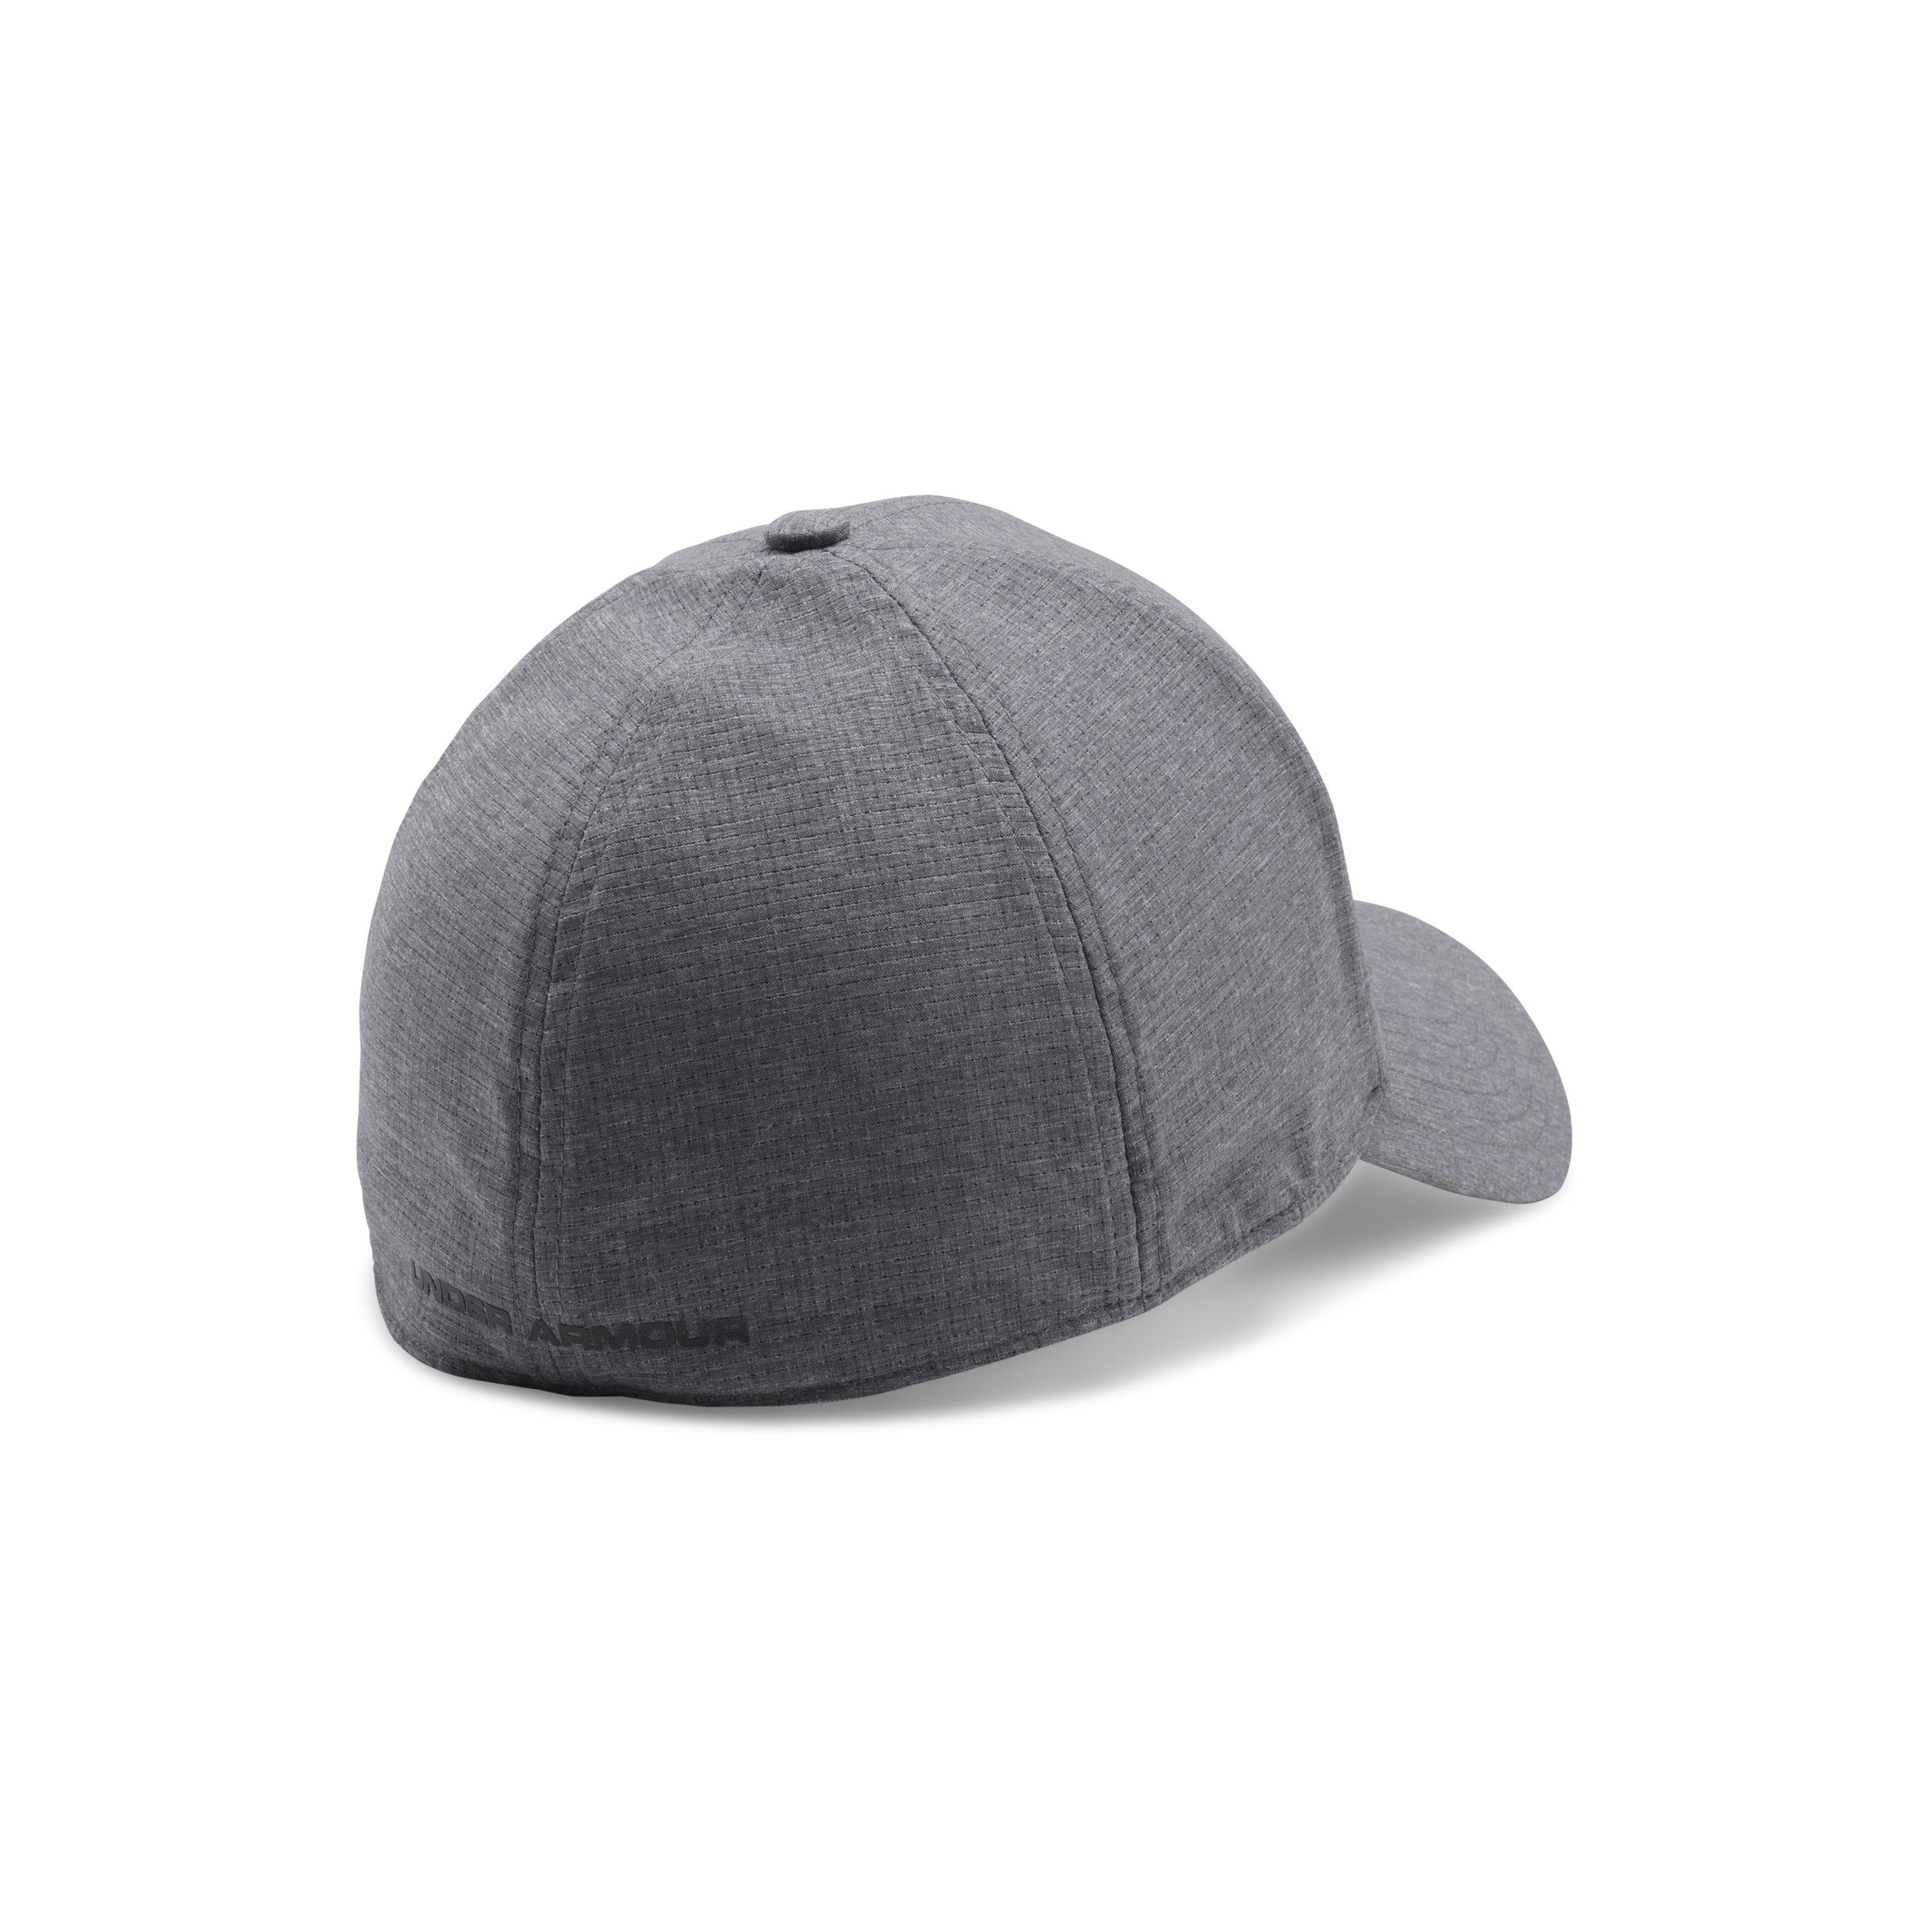 ... hot product 4cceb 97106 Under Armour - Gray Mens Ua Coolswitch  Armourventtm 2.0 Cap for Men ... 56355a0cc287